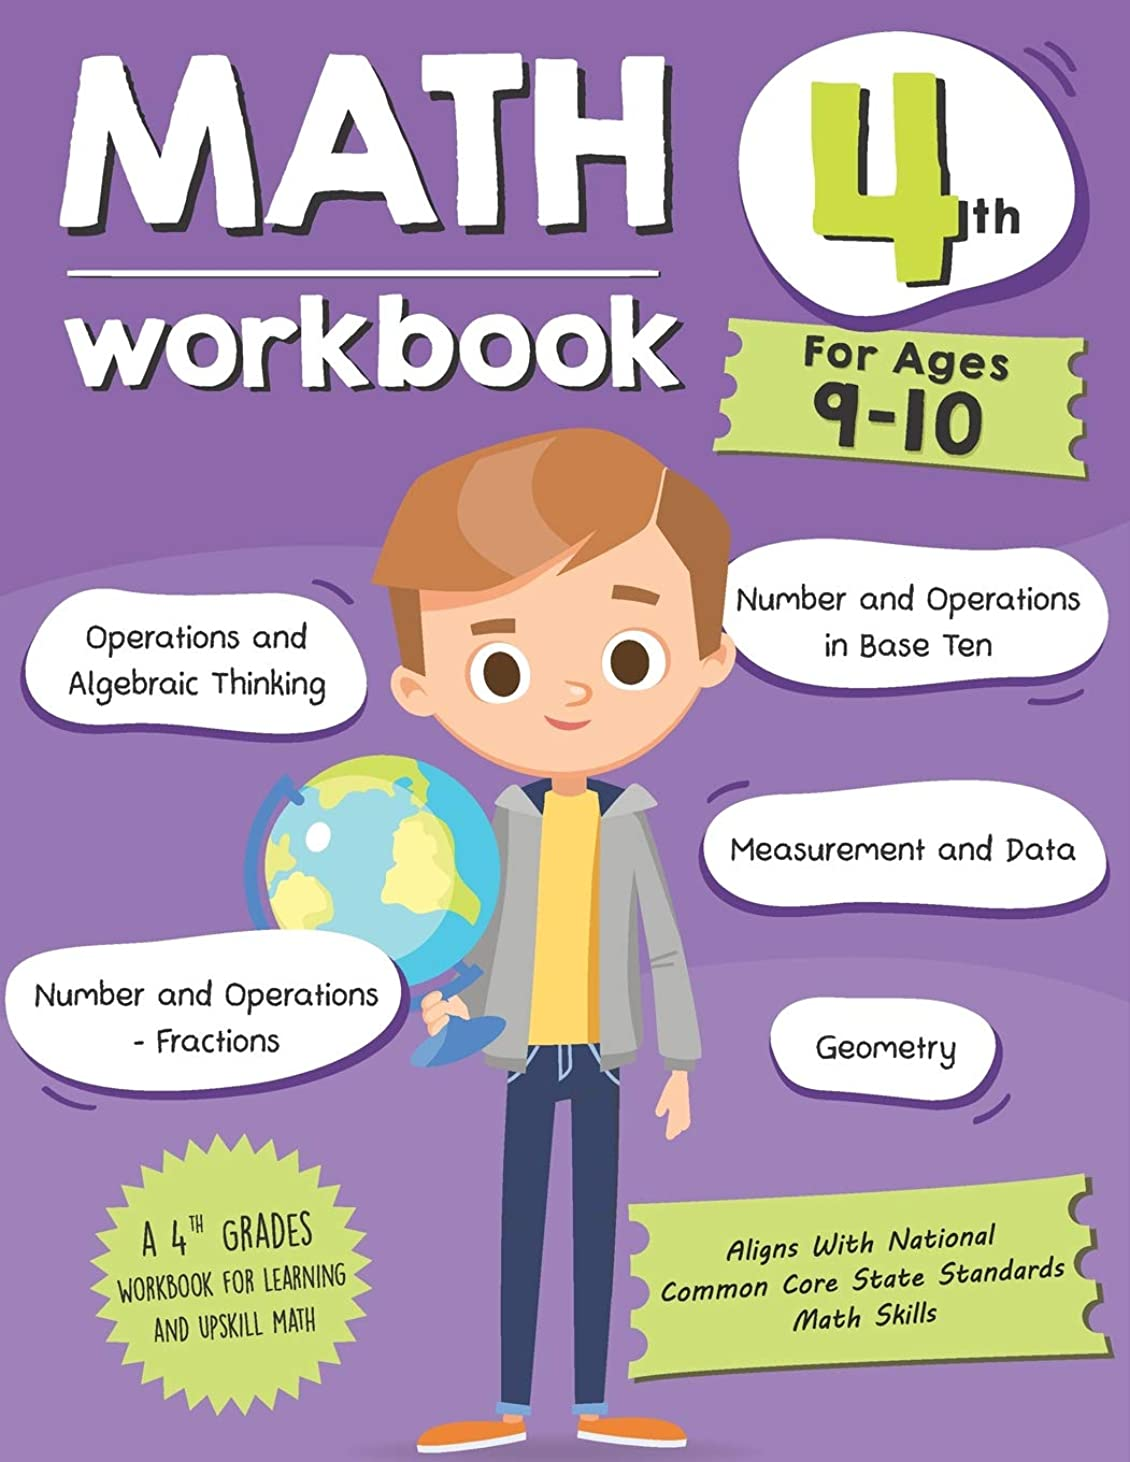 槍道に迷いましたパンMath Workbook Grade 4 (Ages 9-10): A 4th Grade Math Workbook For Learning Aligns With National Common Core Math Skills